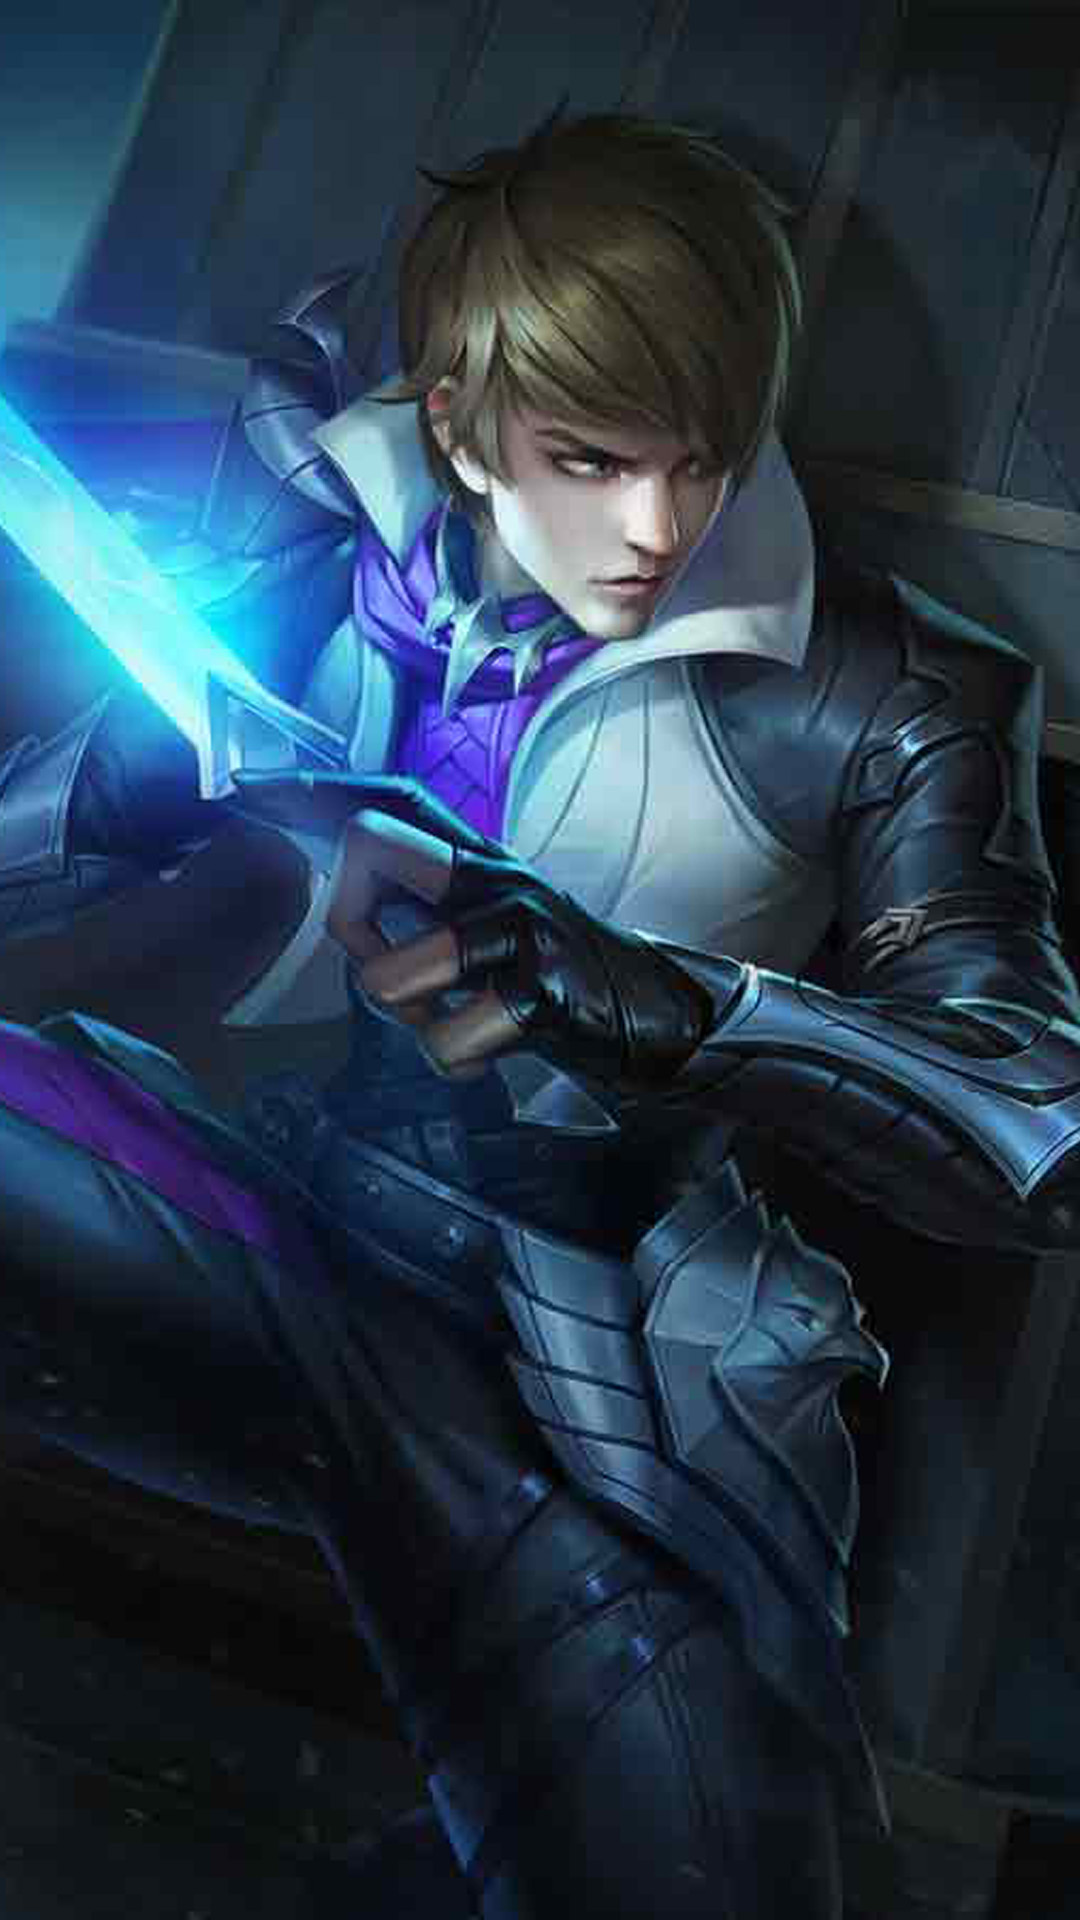 Download Gusion Holy Blade Mobile Legends Free Pure 4k Ultra Hd Mobile Wallpaper